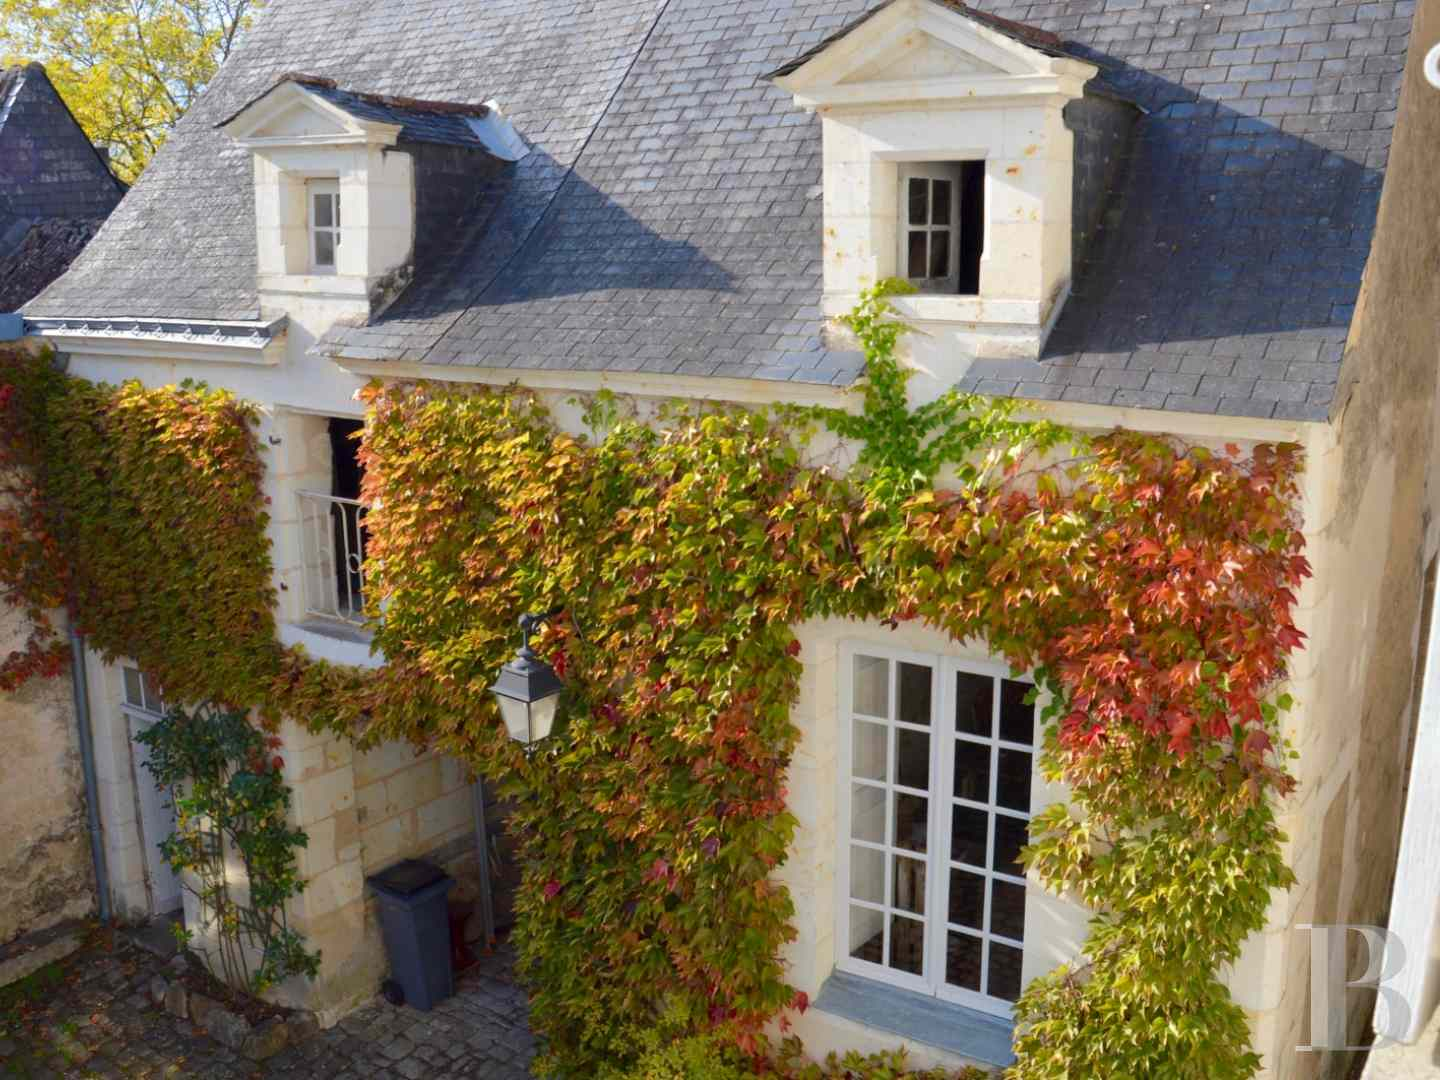 mansion houses for sale France pays de loire mansion houses - 12 zoom